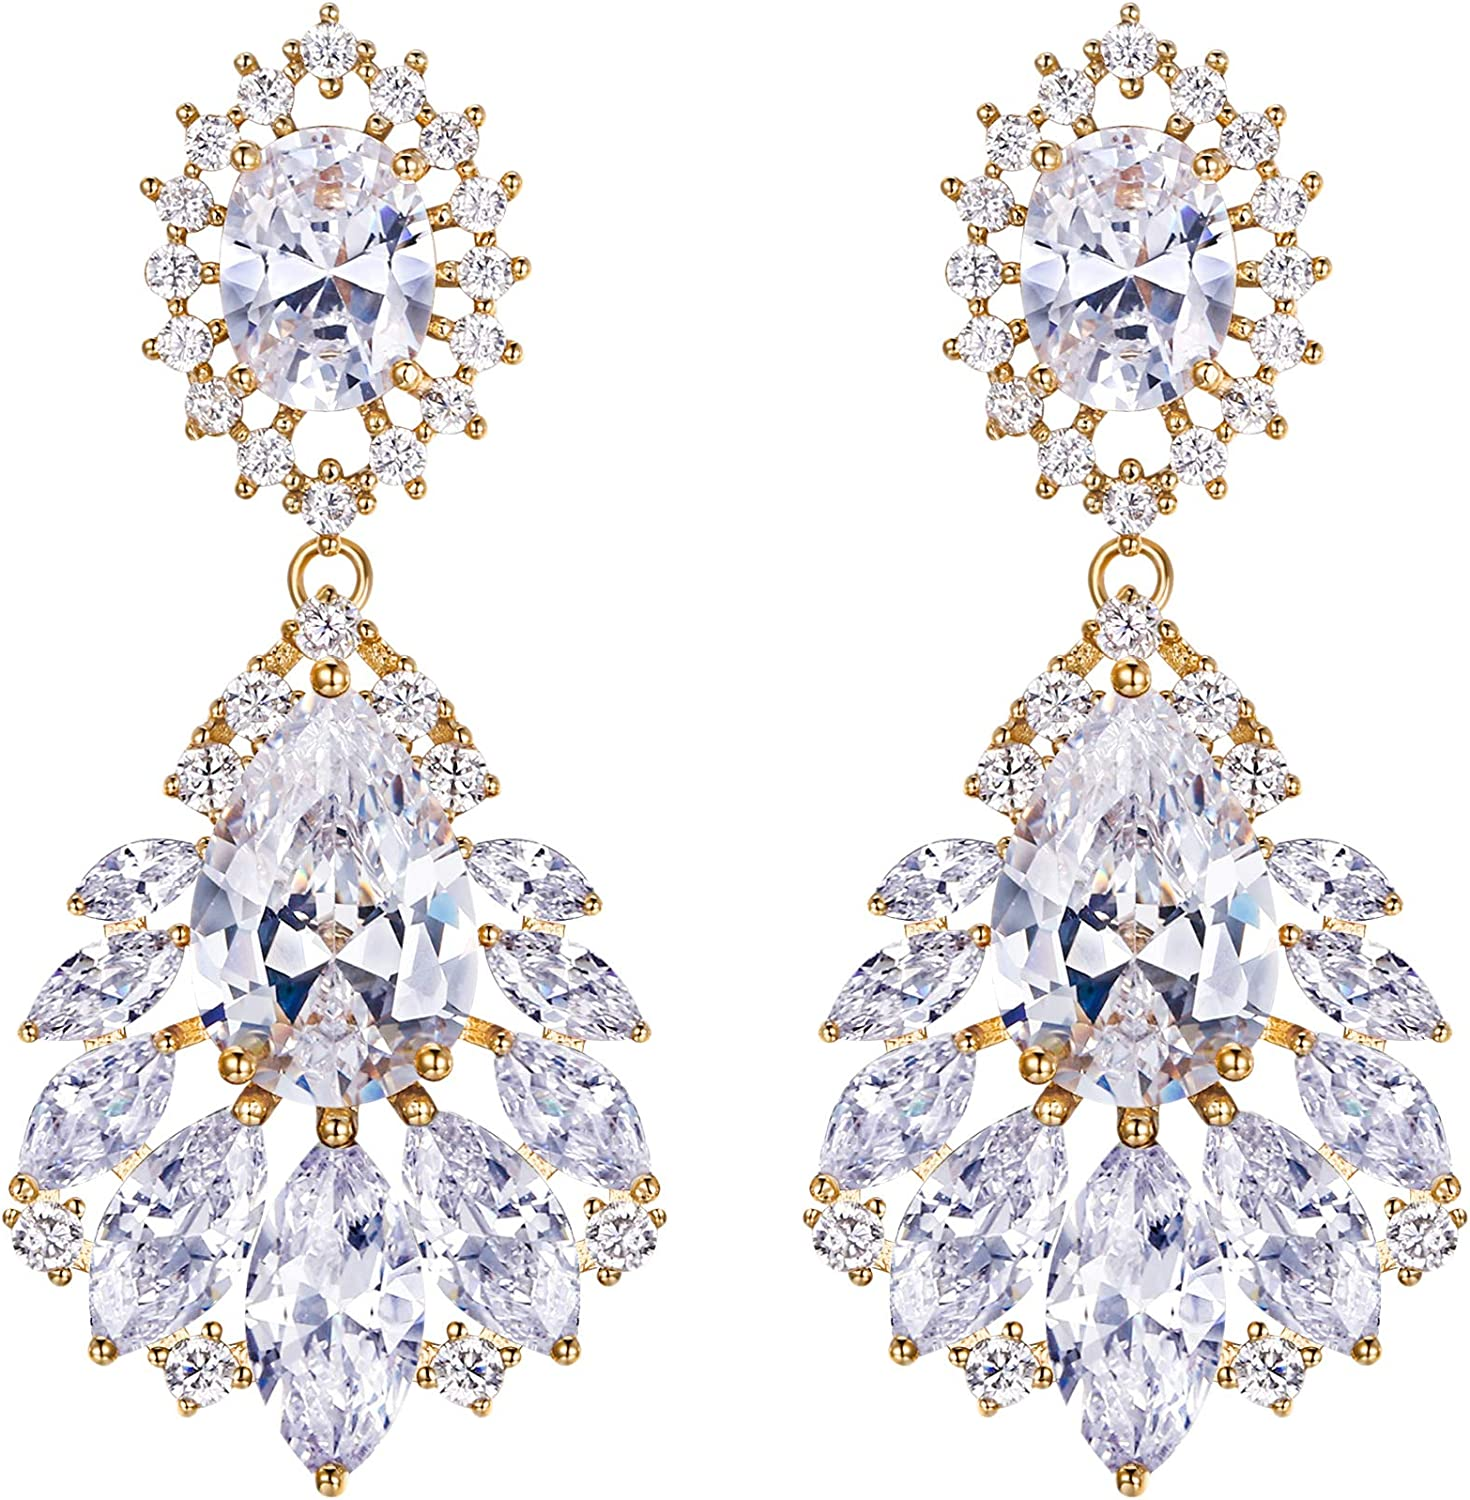 BriLove Sales Wedding Bridal Cubic Zirconia Earrings Clip_On 2021 autumn and winter new for Women